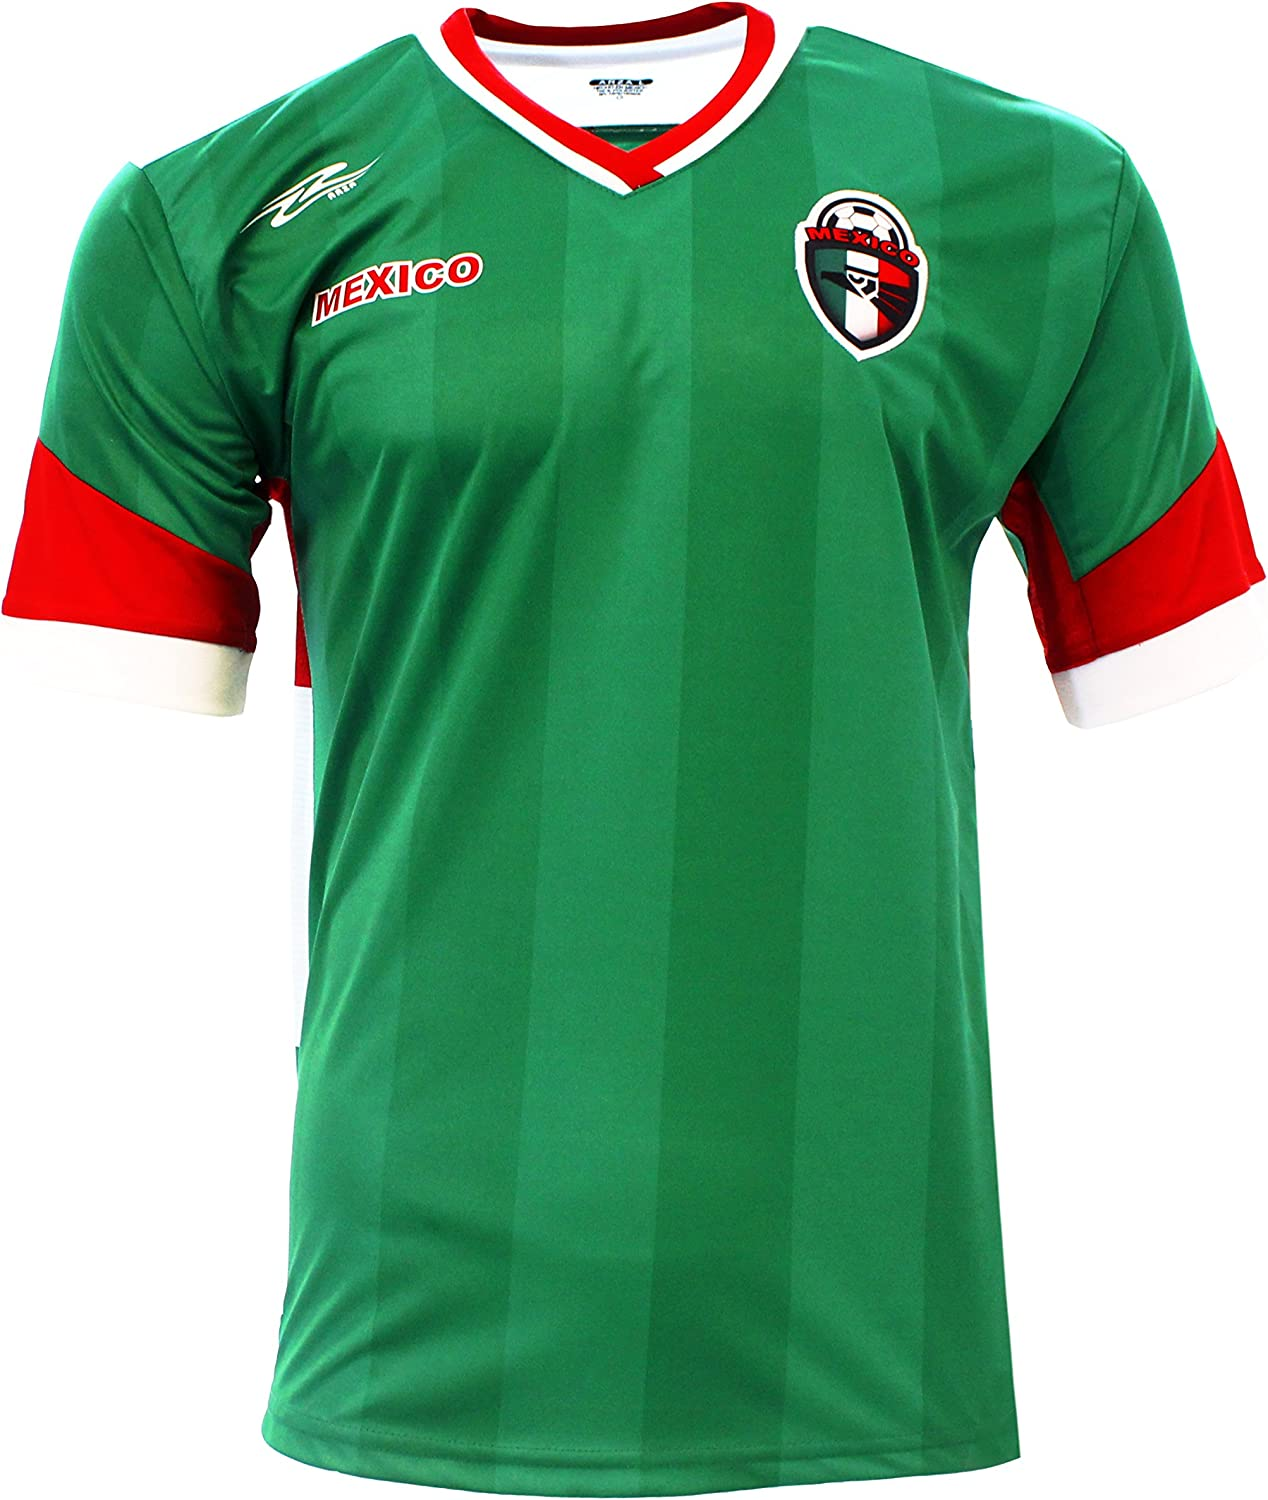 Mexico New Arza Soccer Jersey Green Neck Sleev Short White Max 72% 2021 autumn and winter new OFF V Red